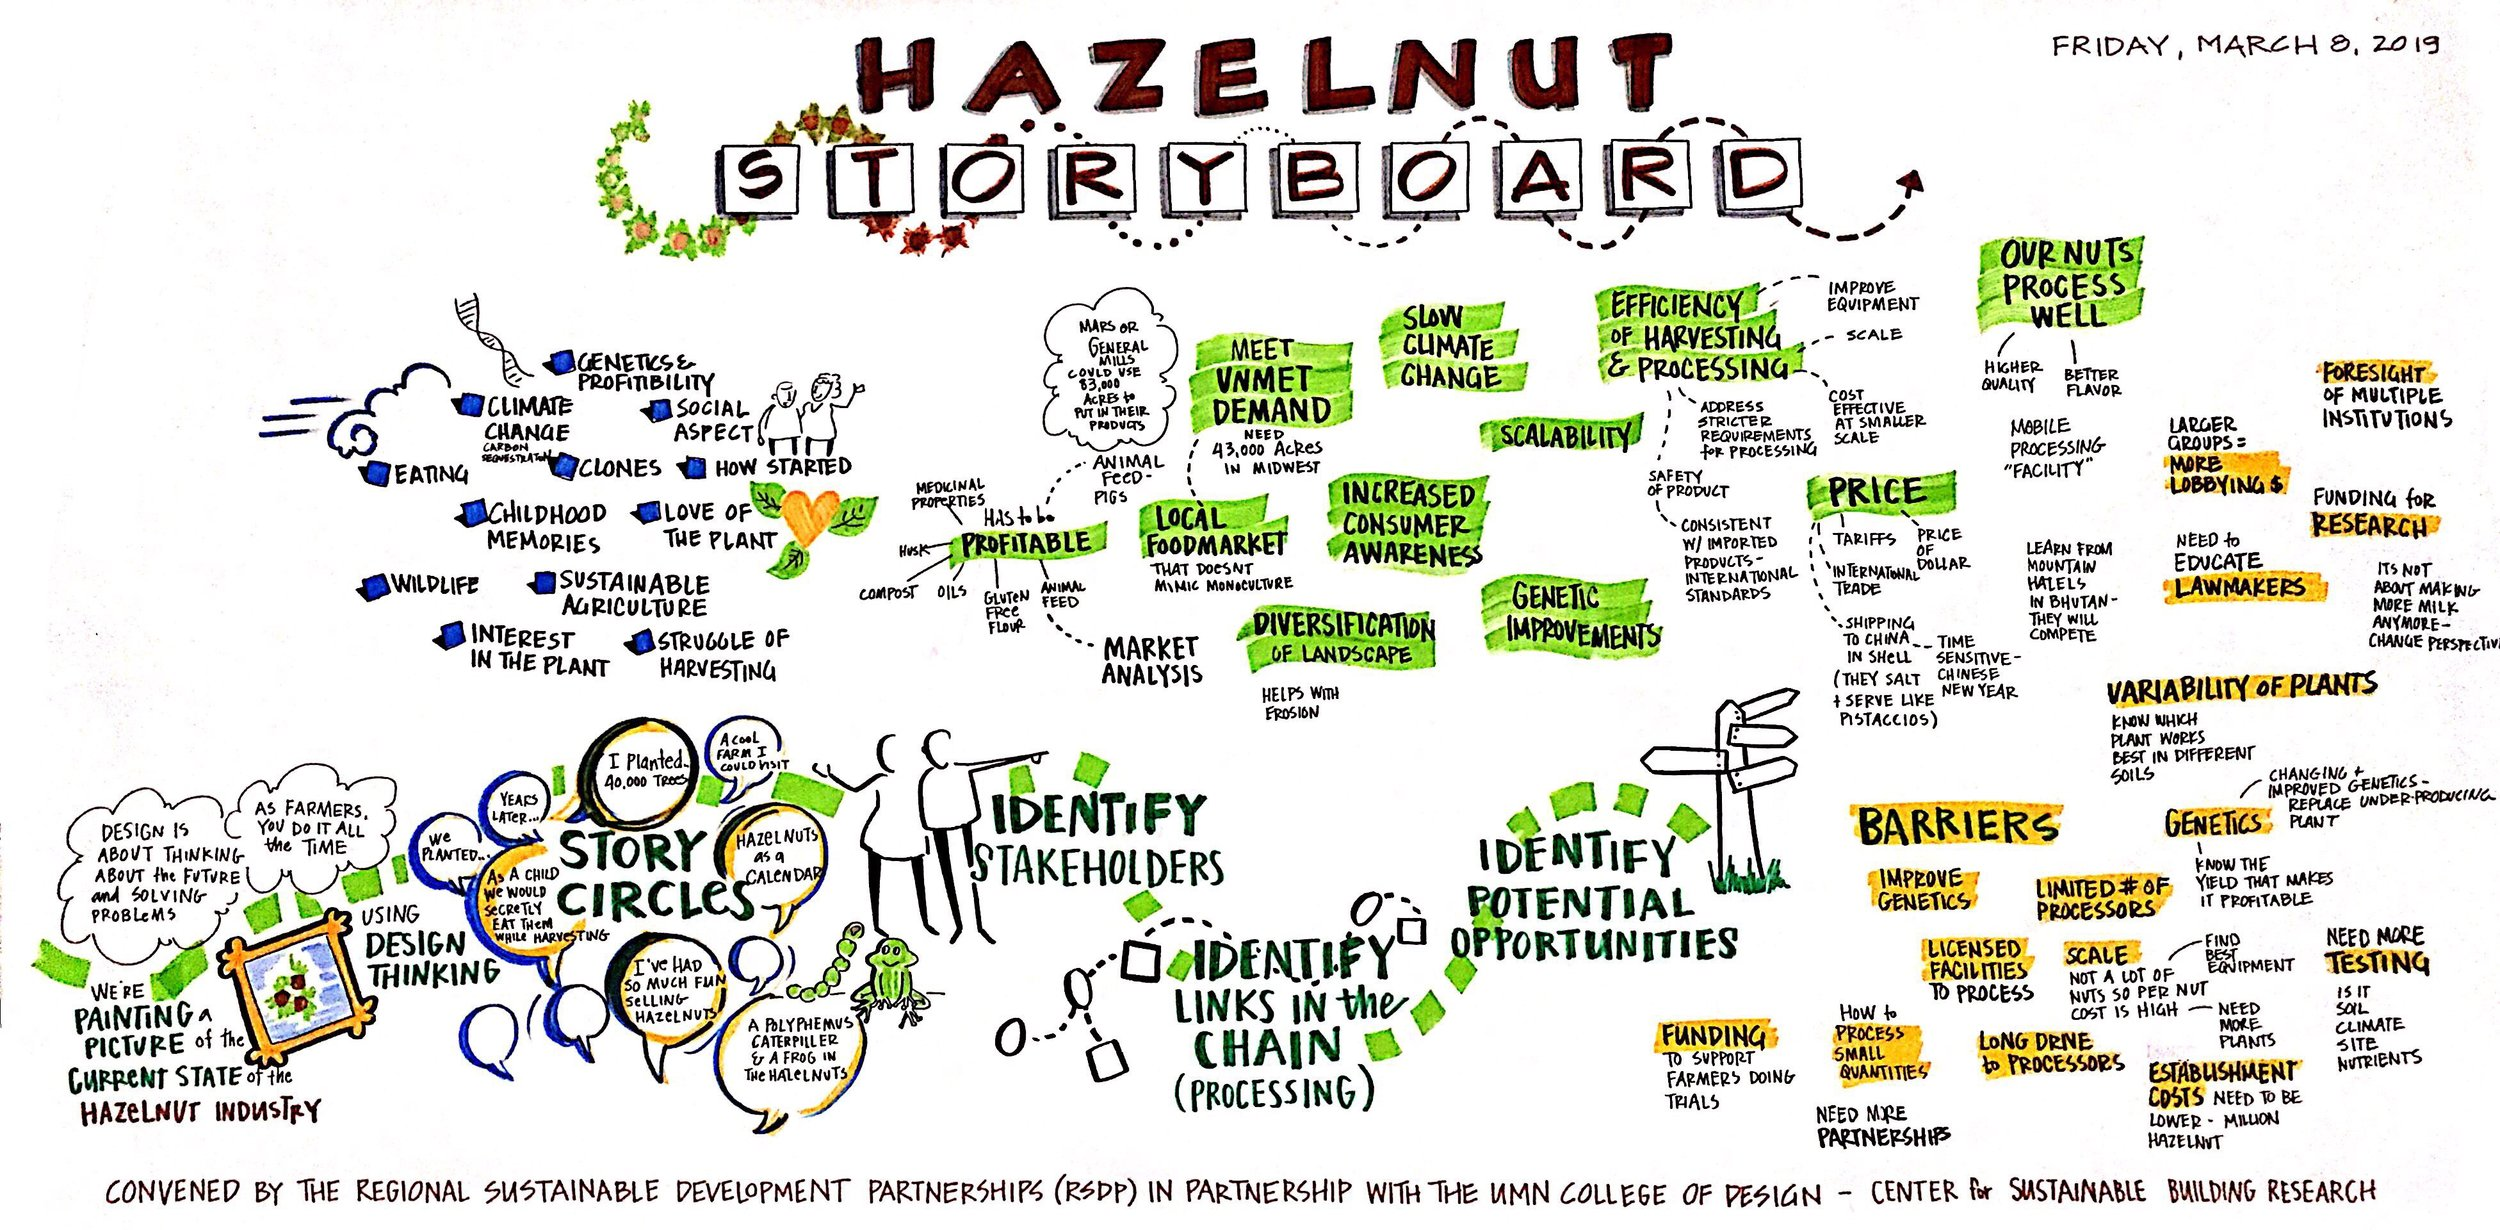 Hazelnut Raw Graphic Recording.jpg